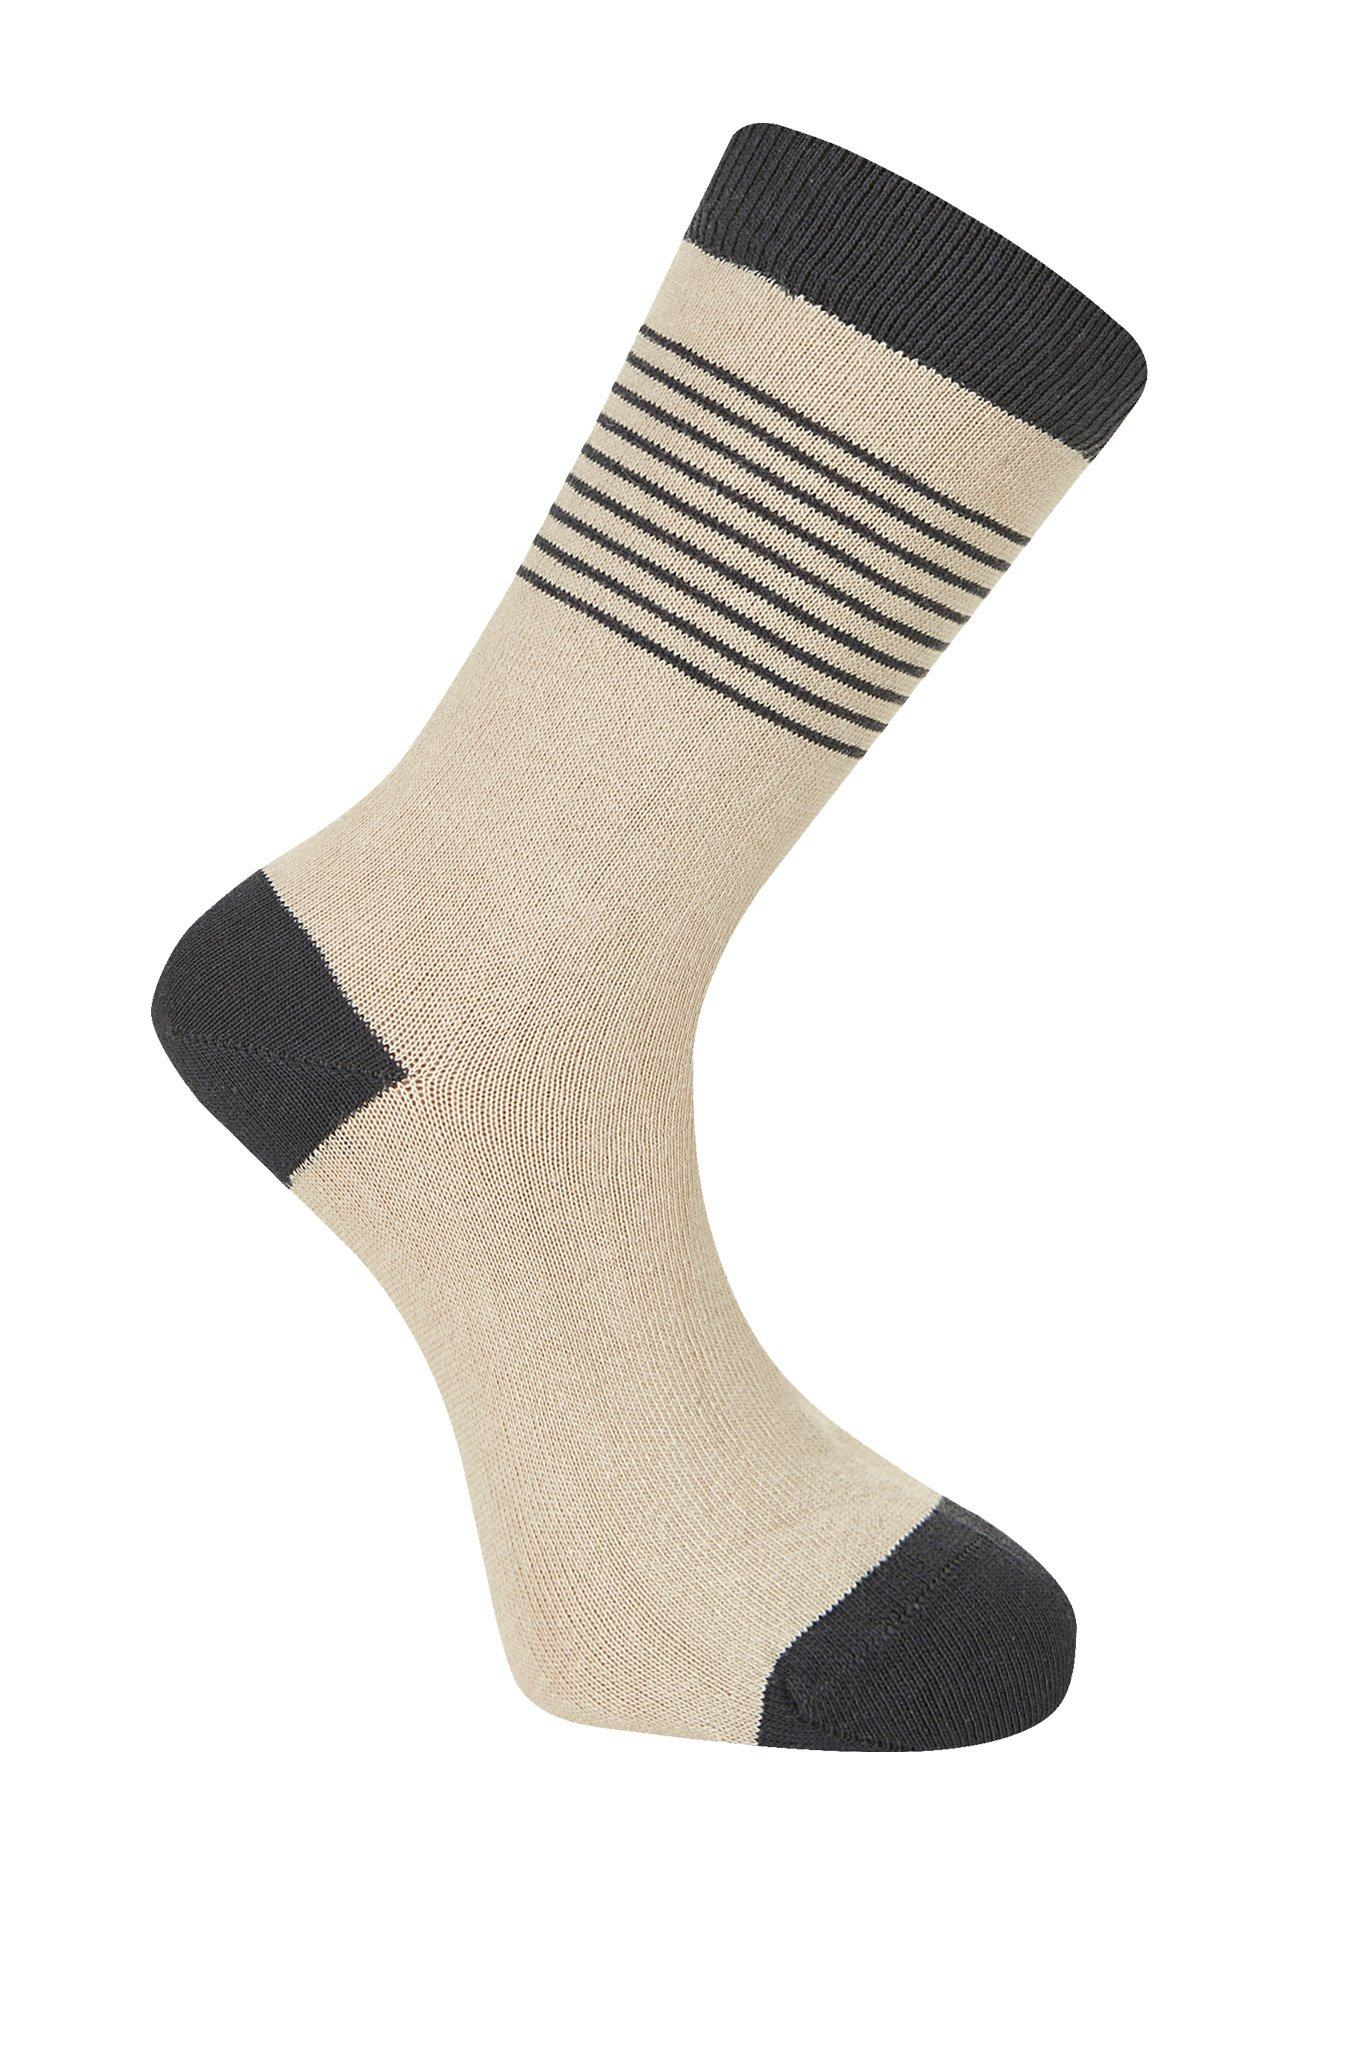 BRETON Camel Organic Cotton Socks - Komodo Fashion